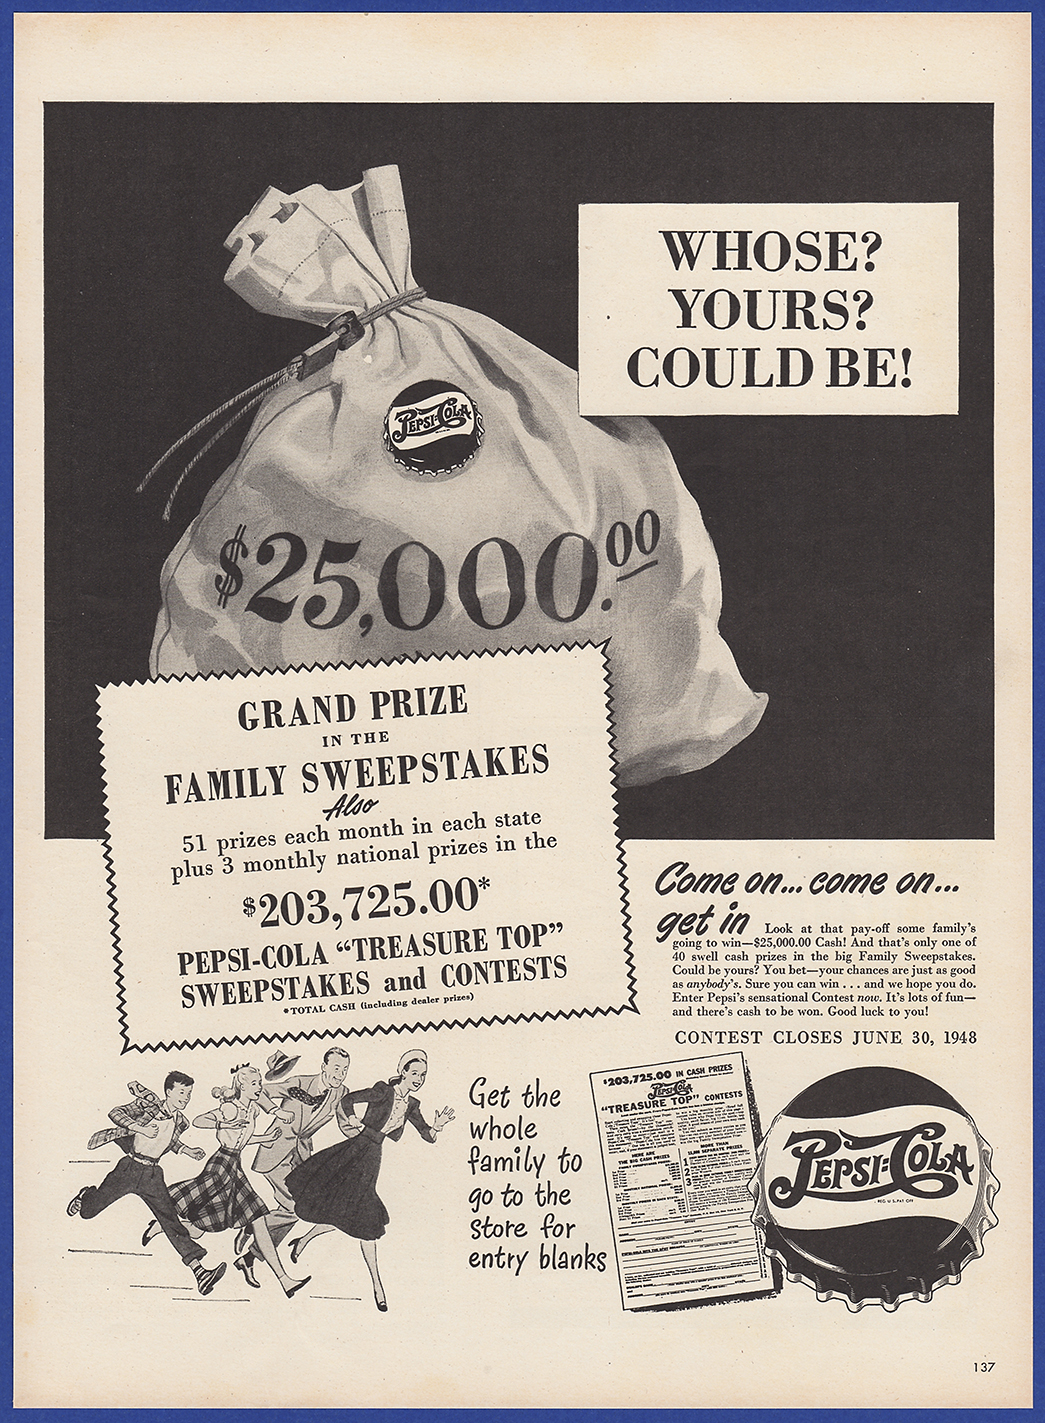 Details about Vintage 1948 PEPSI-COLA Pepsi Soda Pop Sweepstakes Contest  Cola Print Ad